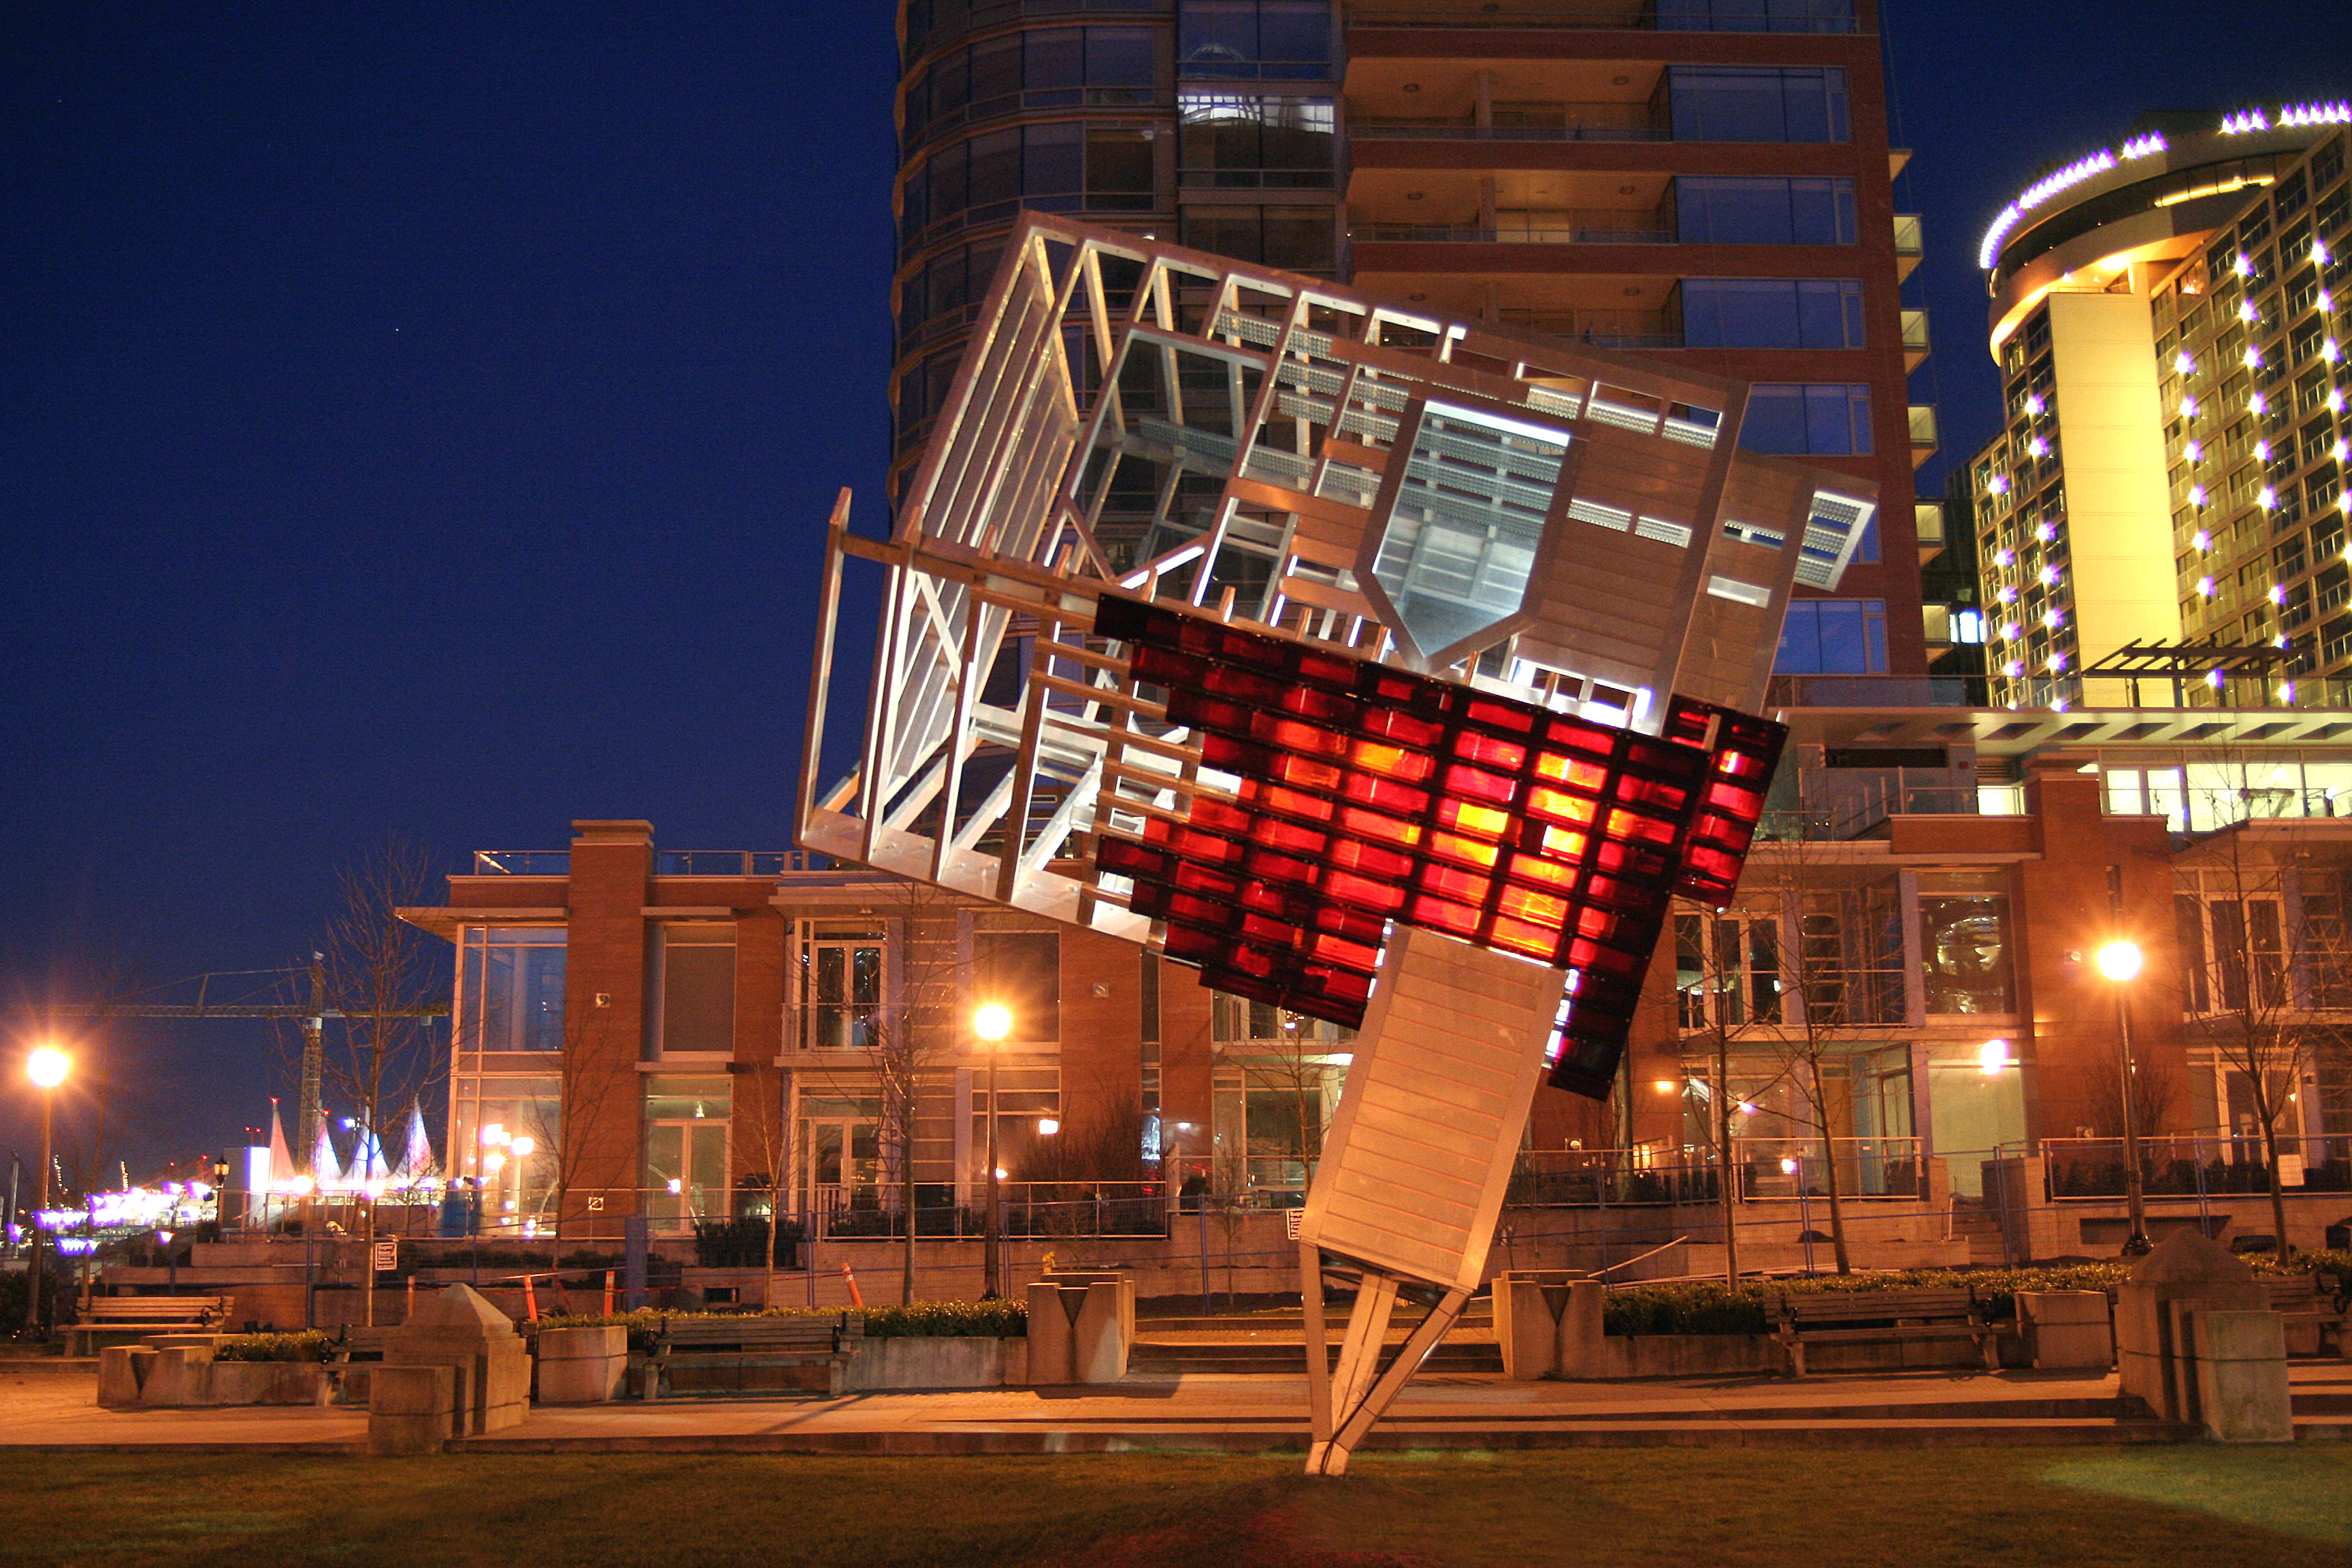 Dennis Oppenheim. DEVICE TO ROOT OUT EVIL. Harbour Green Park in Vancouver. 2005 - 2007 exhibition. Photo by Dan Fairchild Photography. 12--Art that glows